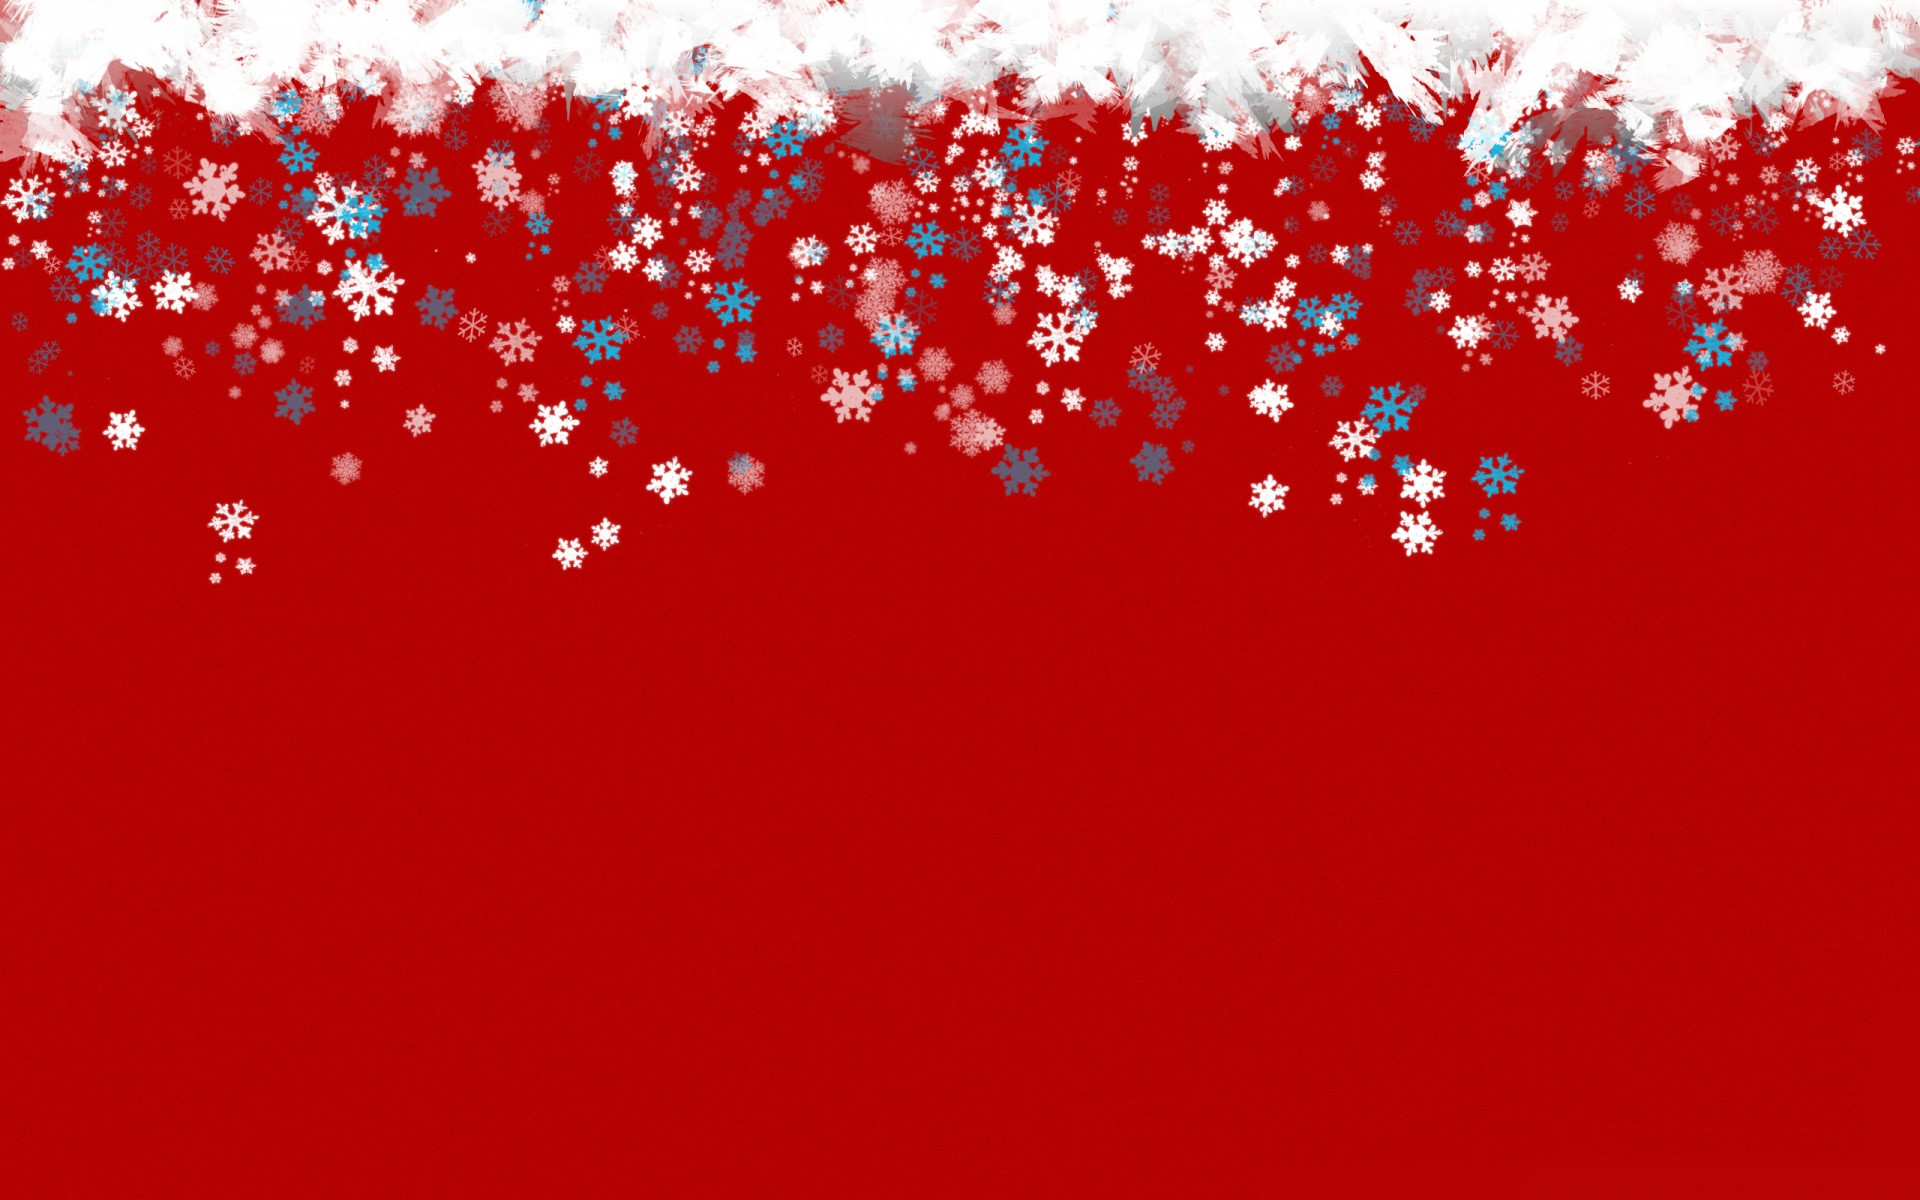 1920x1200 Download wallpaper: Christmas wallpapers for desktop, merry christmas  wallaper, X-mas wallapper, download photo, Christmas